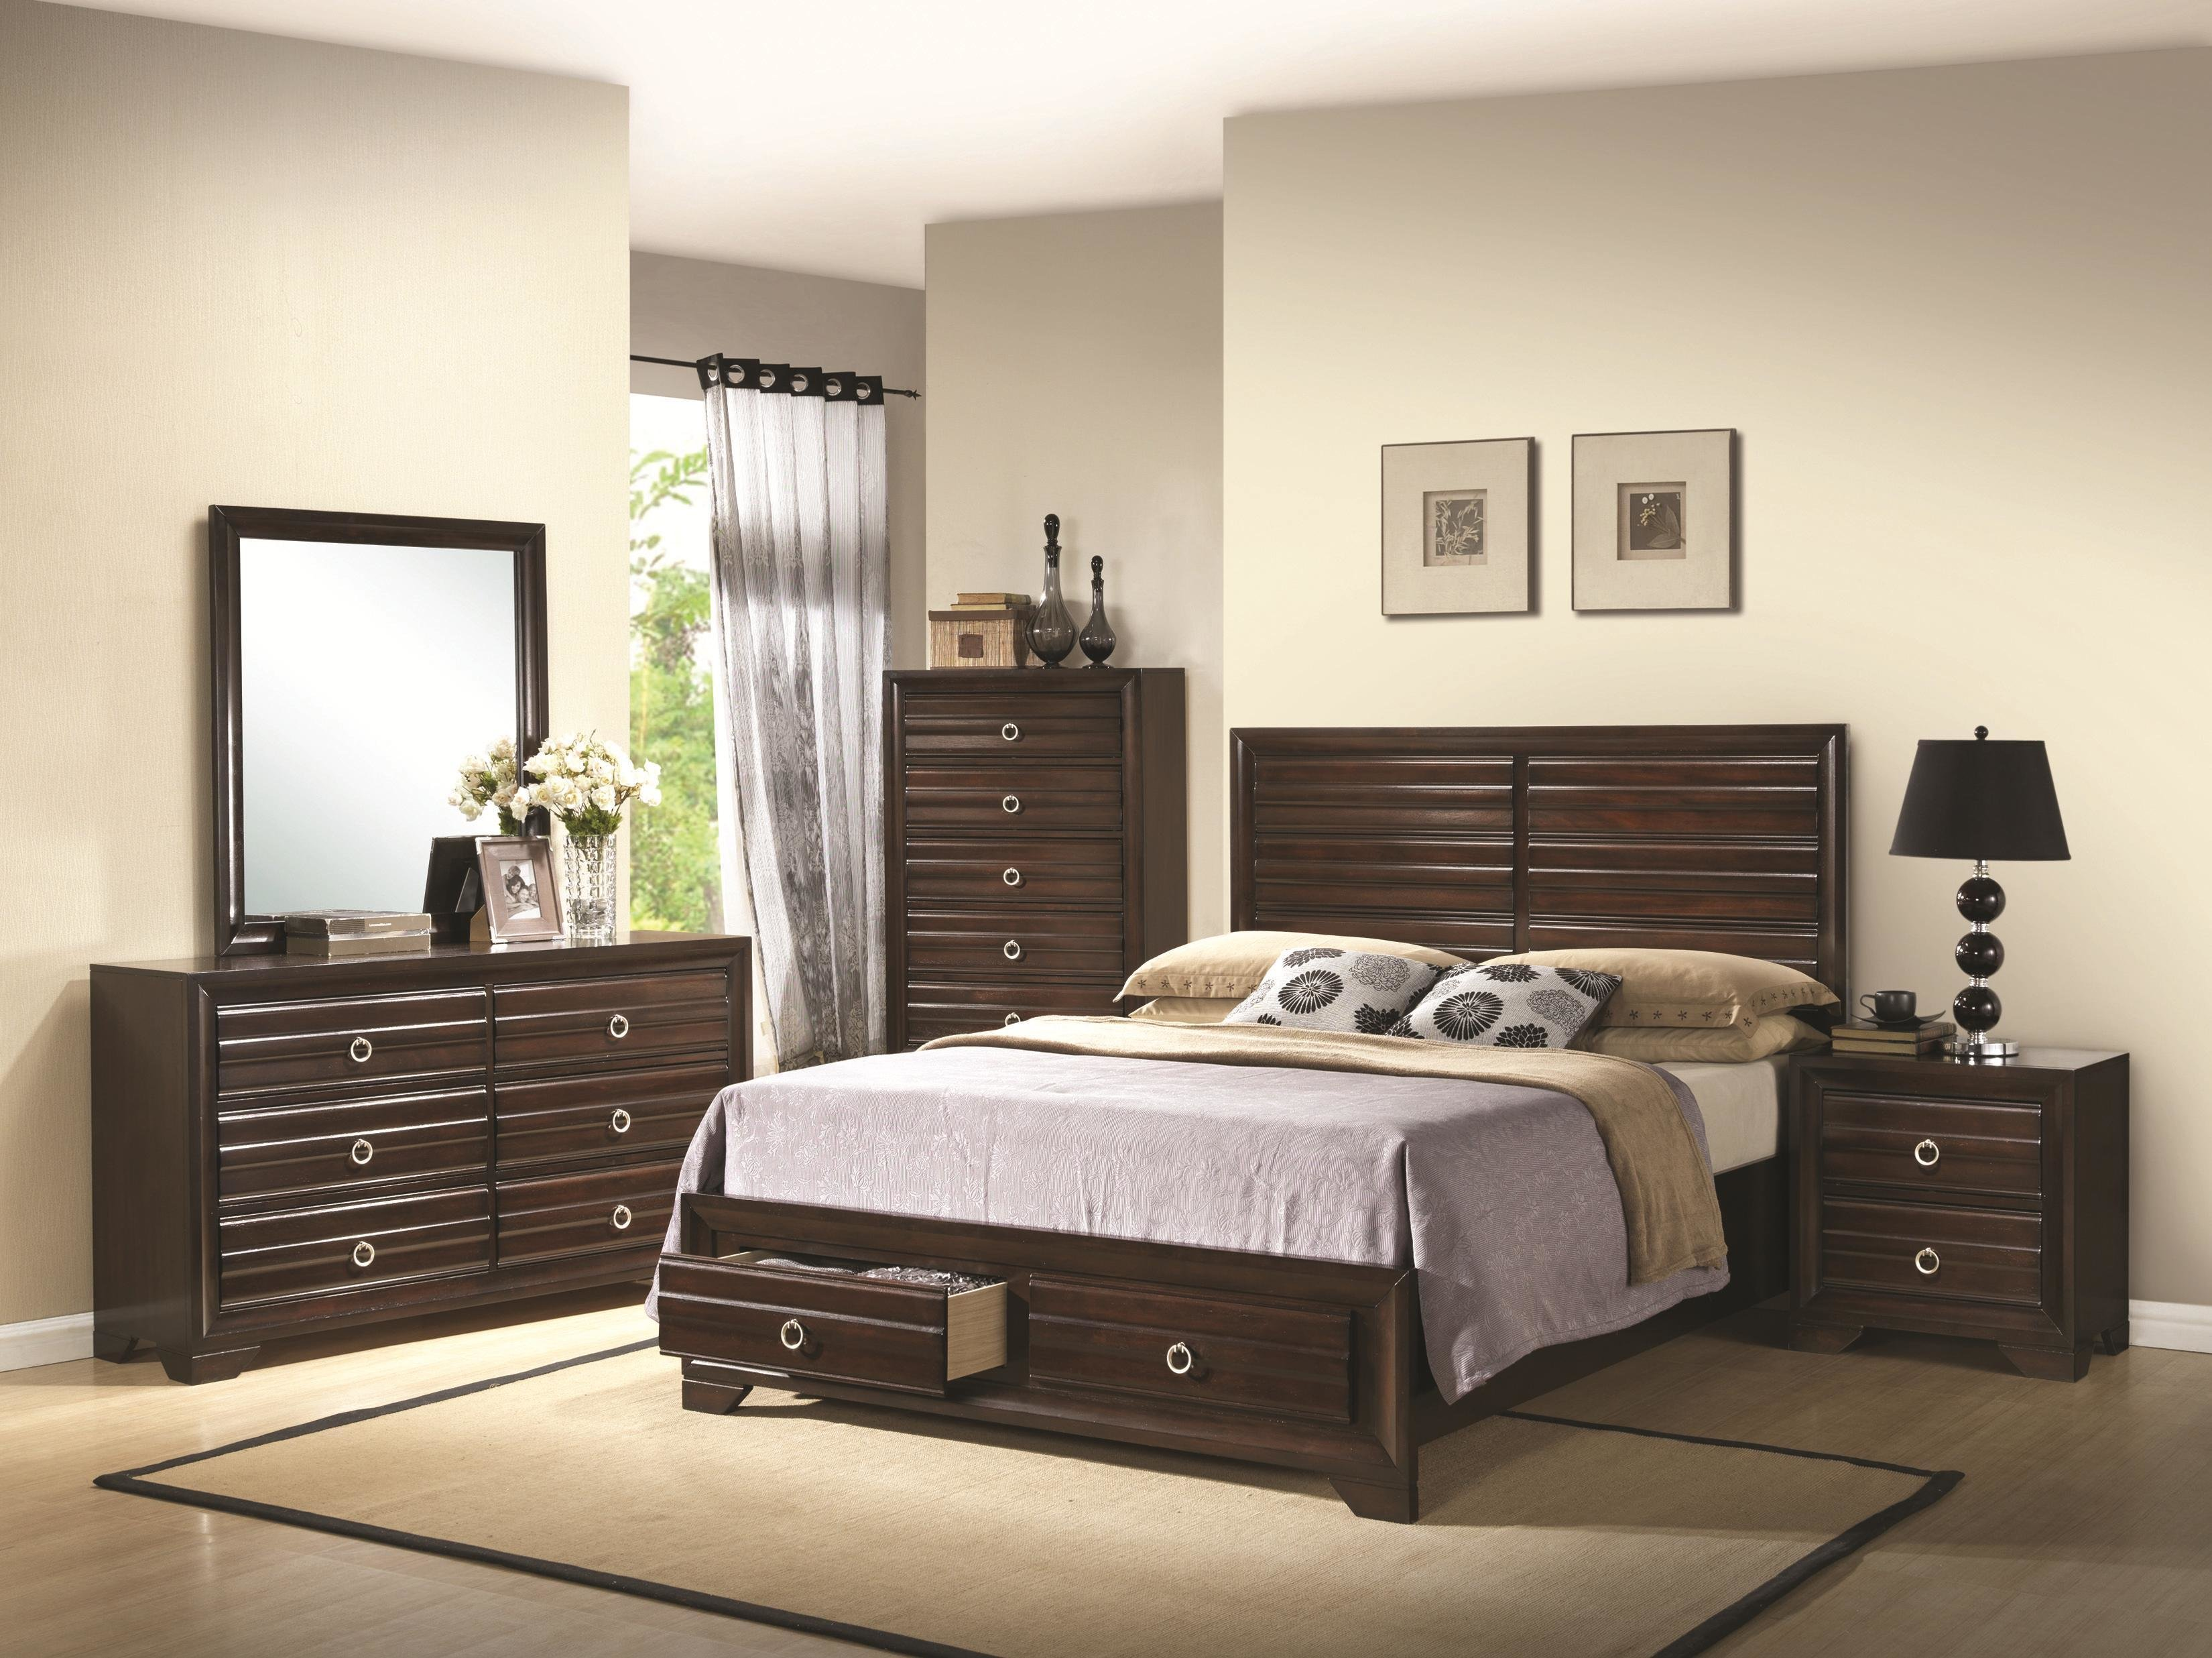 Best Beds Co Furniture Bryce Bedroom Collection Co 203471 With Pictures